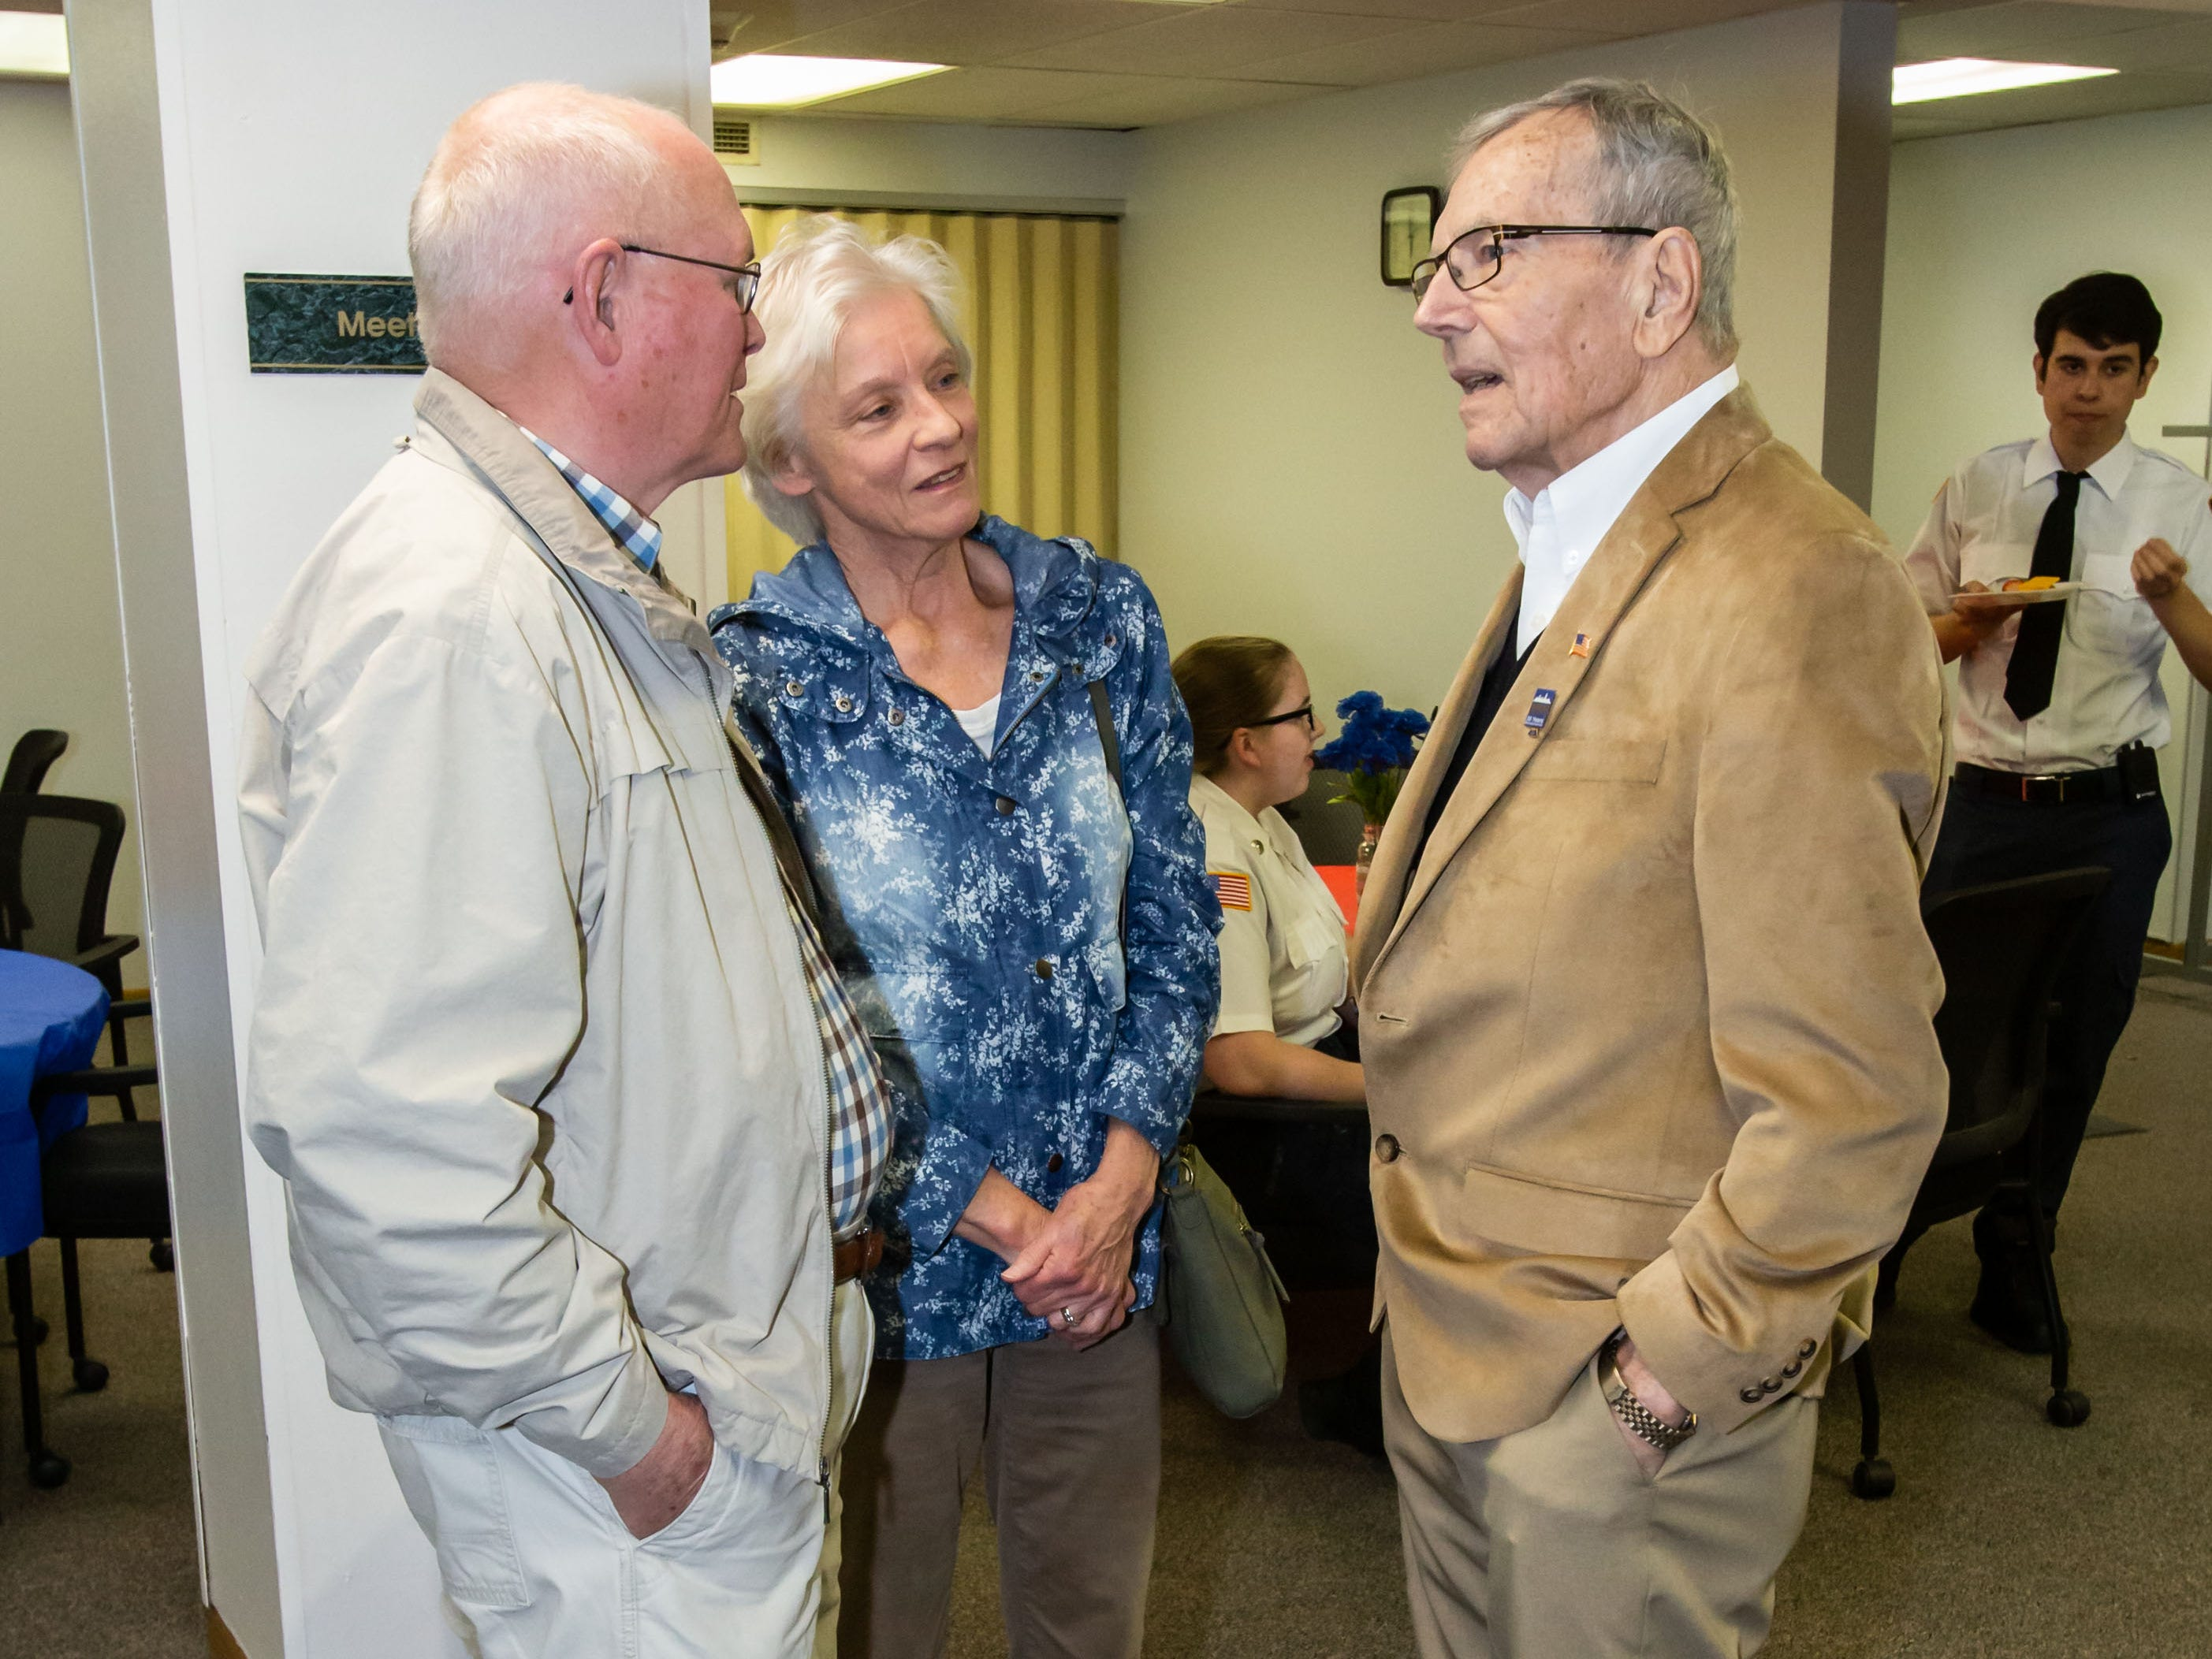 Jim and Cathy Wilson of Delafield chat with Hartland Village Board trustee Richard Landwehr (right) during a reception in his honor on Monday, April 8, 2019. Richard is retiring from the board after 53 years of service.